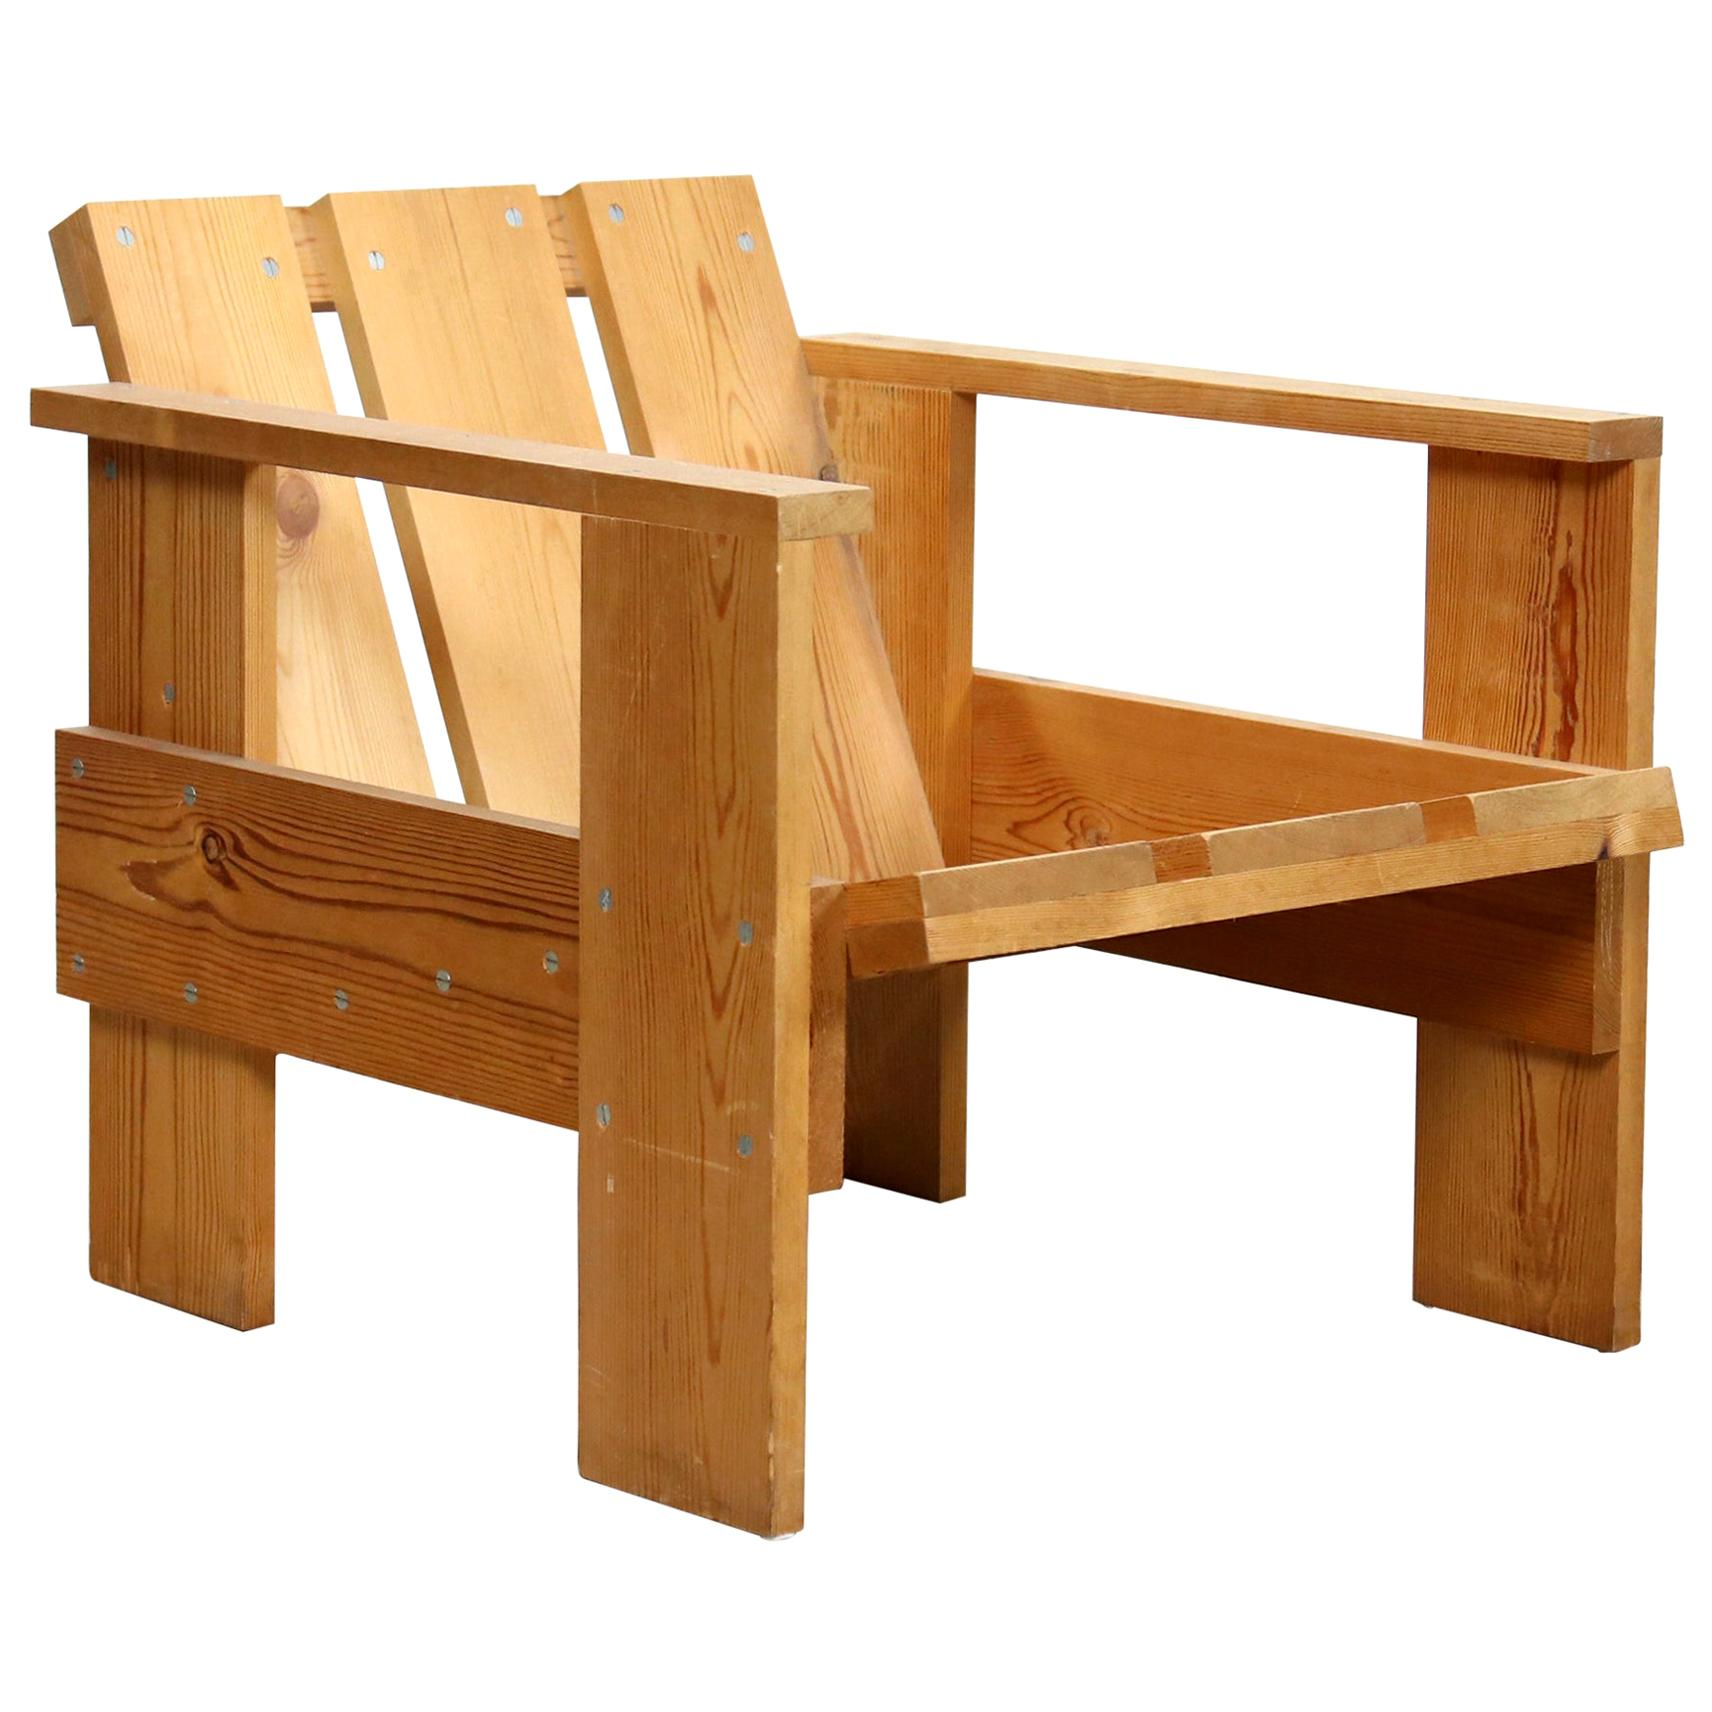 Original Gerrit Rietveld Dutch Modernist Pinewood Crate Chair designed in 1934